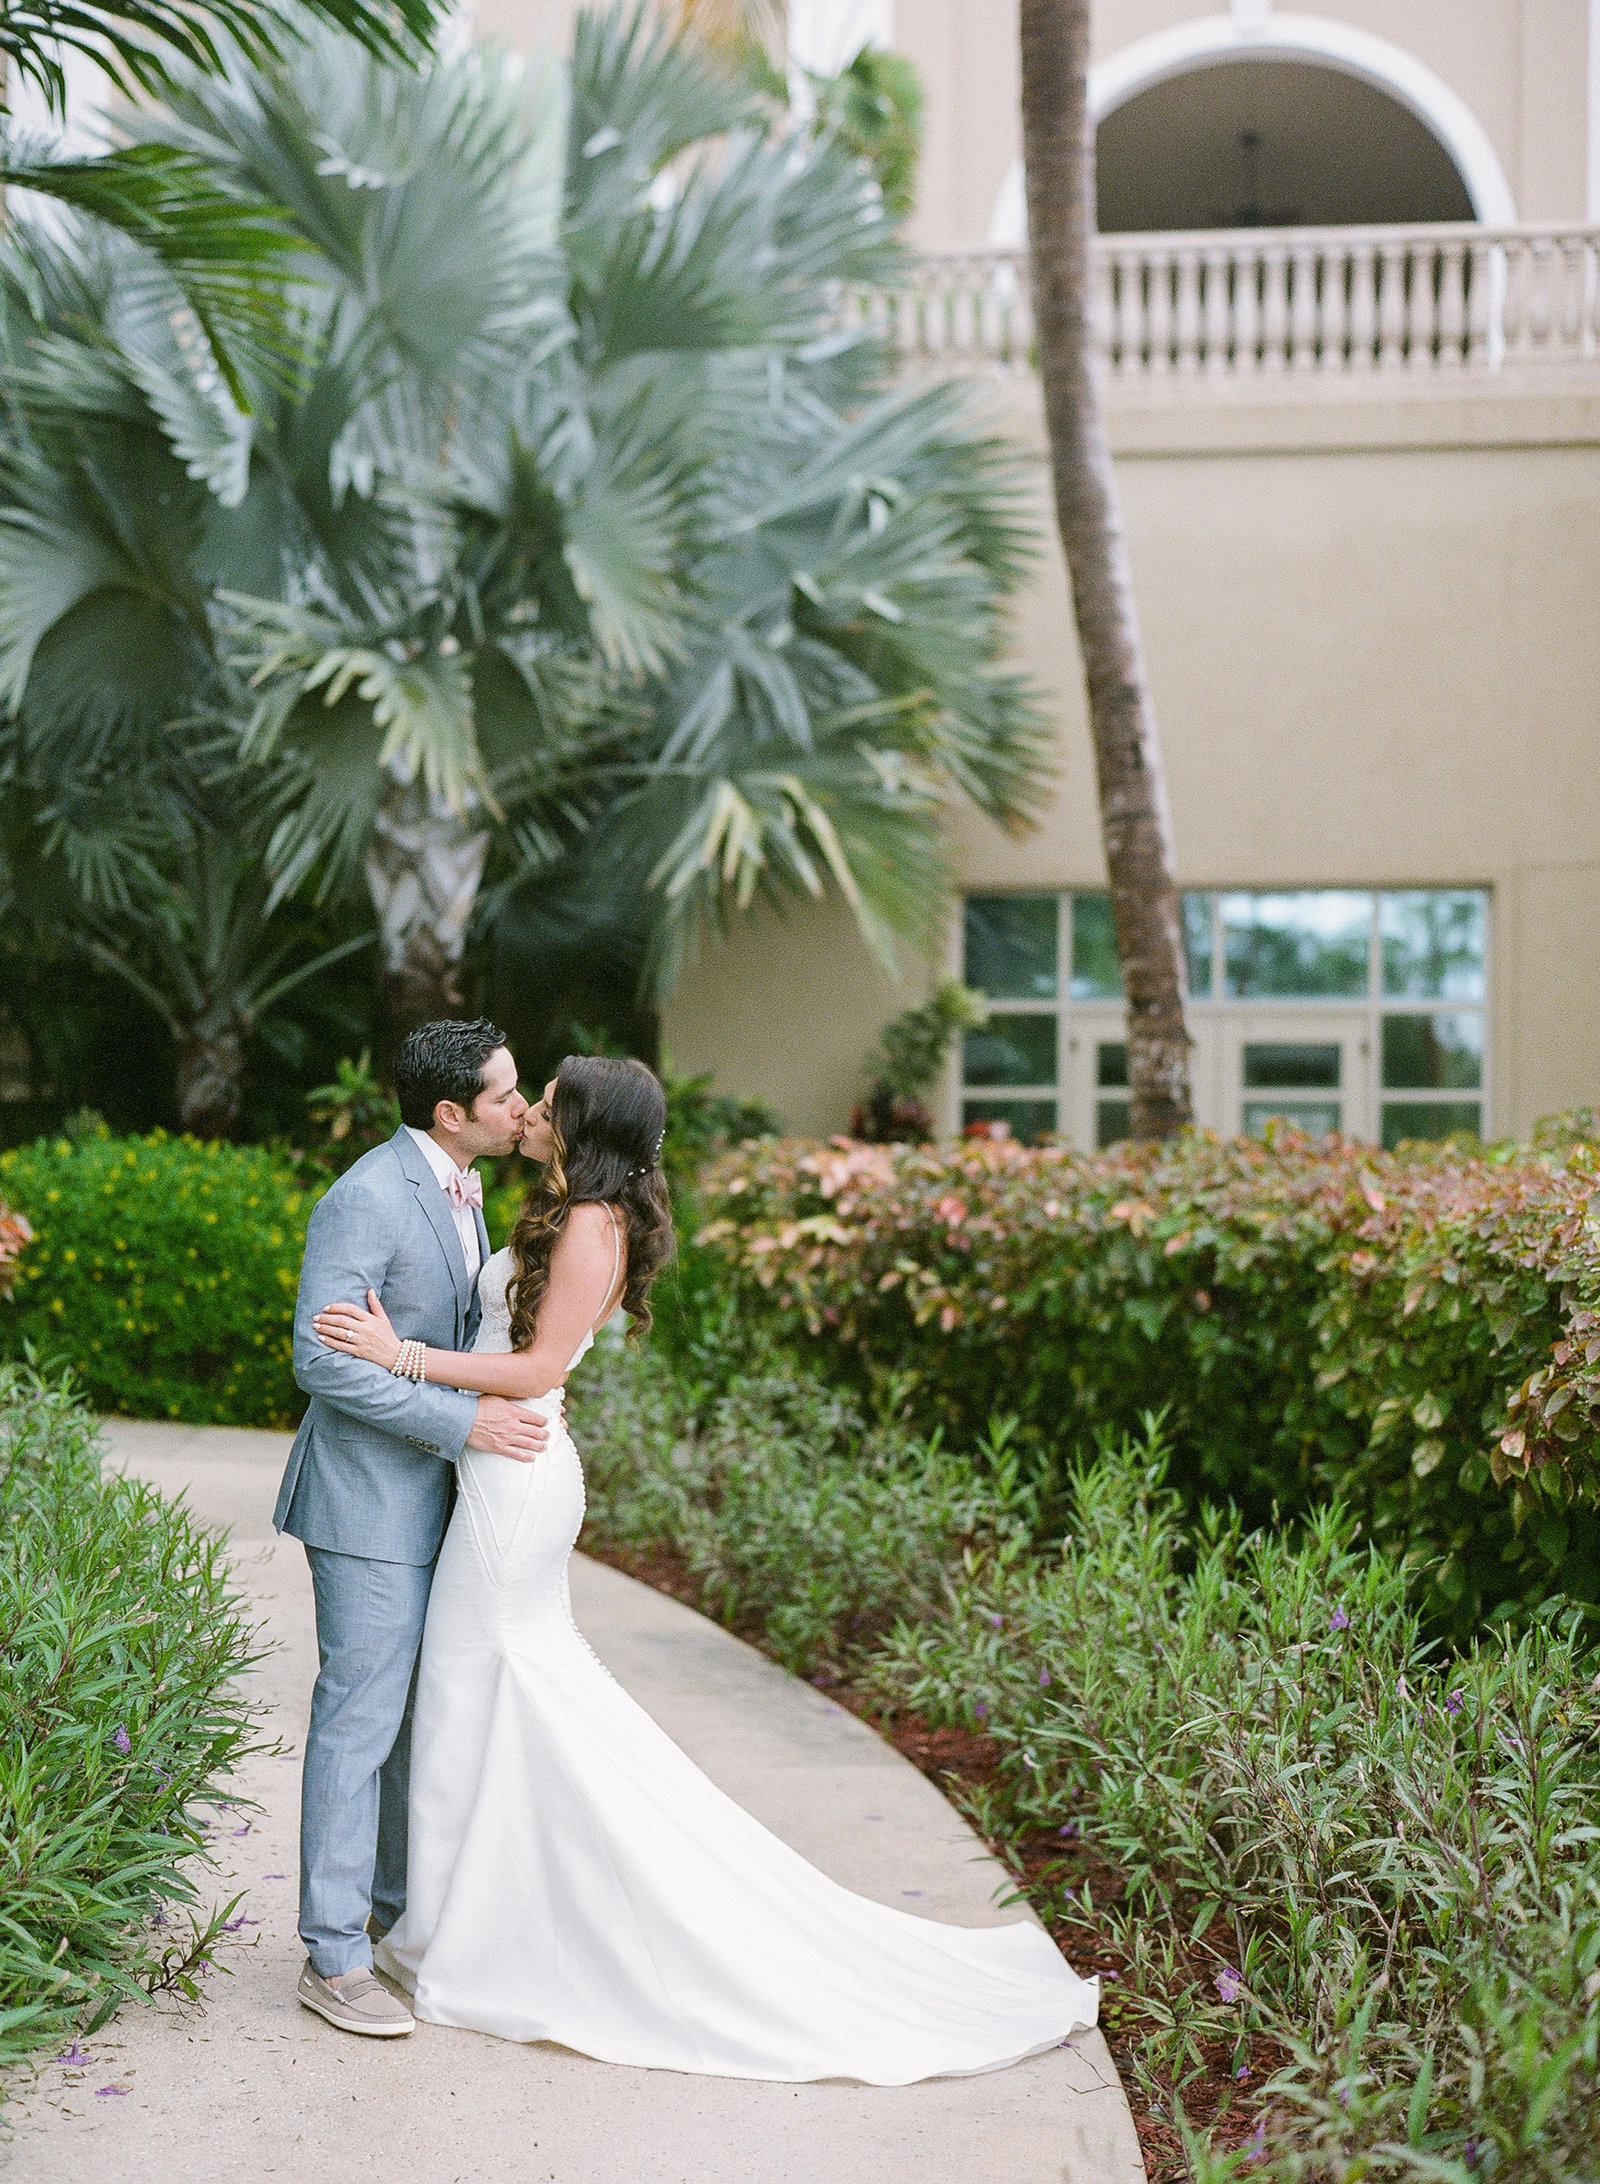 20180810-Pura-Soul-Photo-Ritz-Grand-Cayman-Wedding